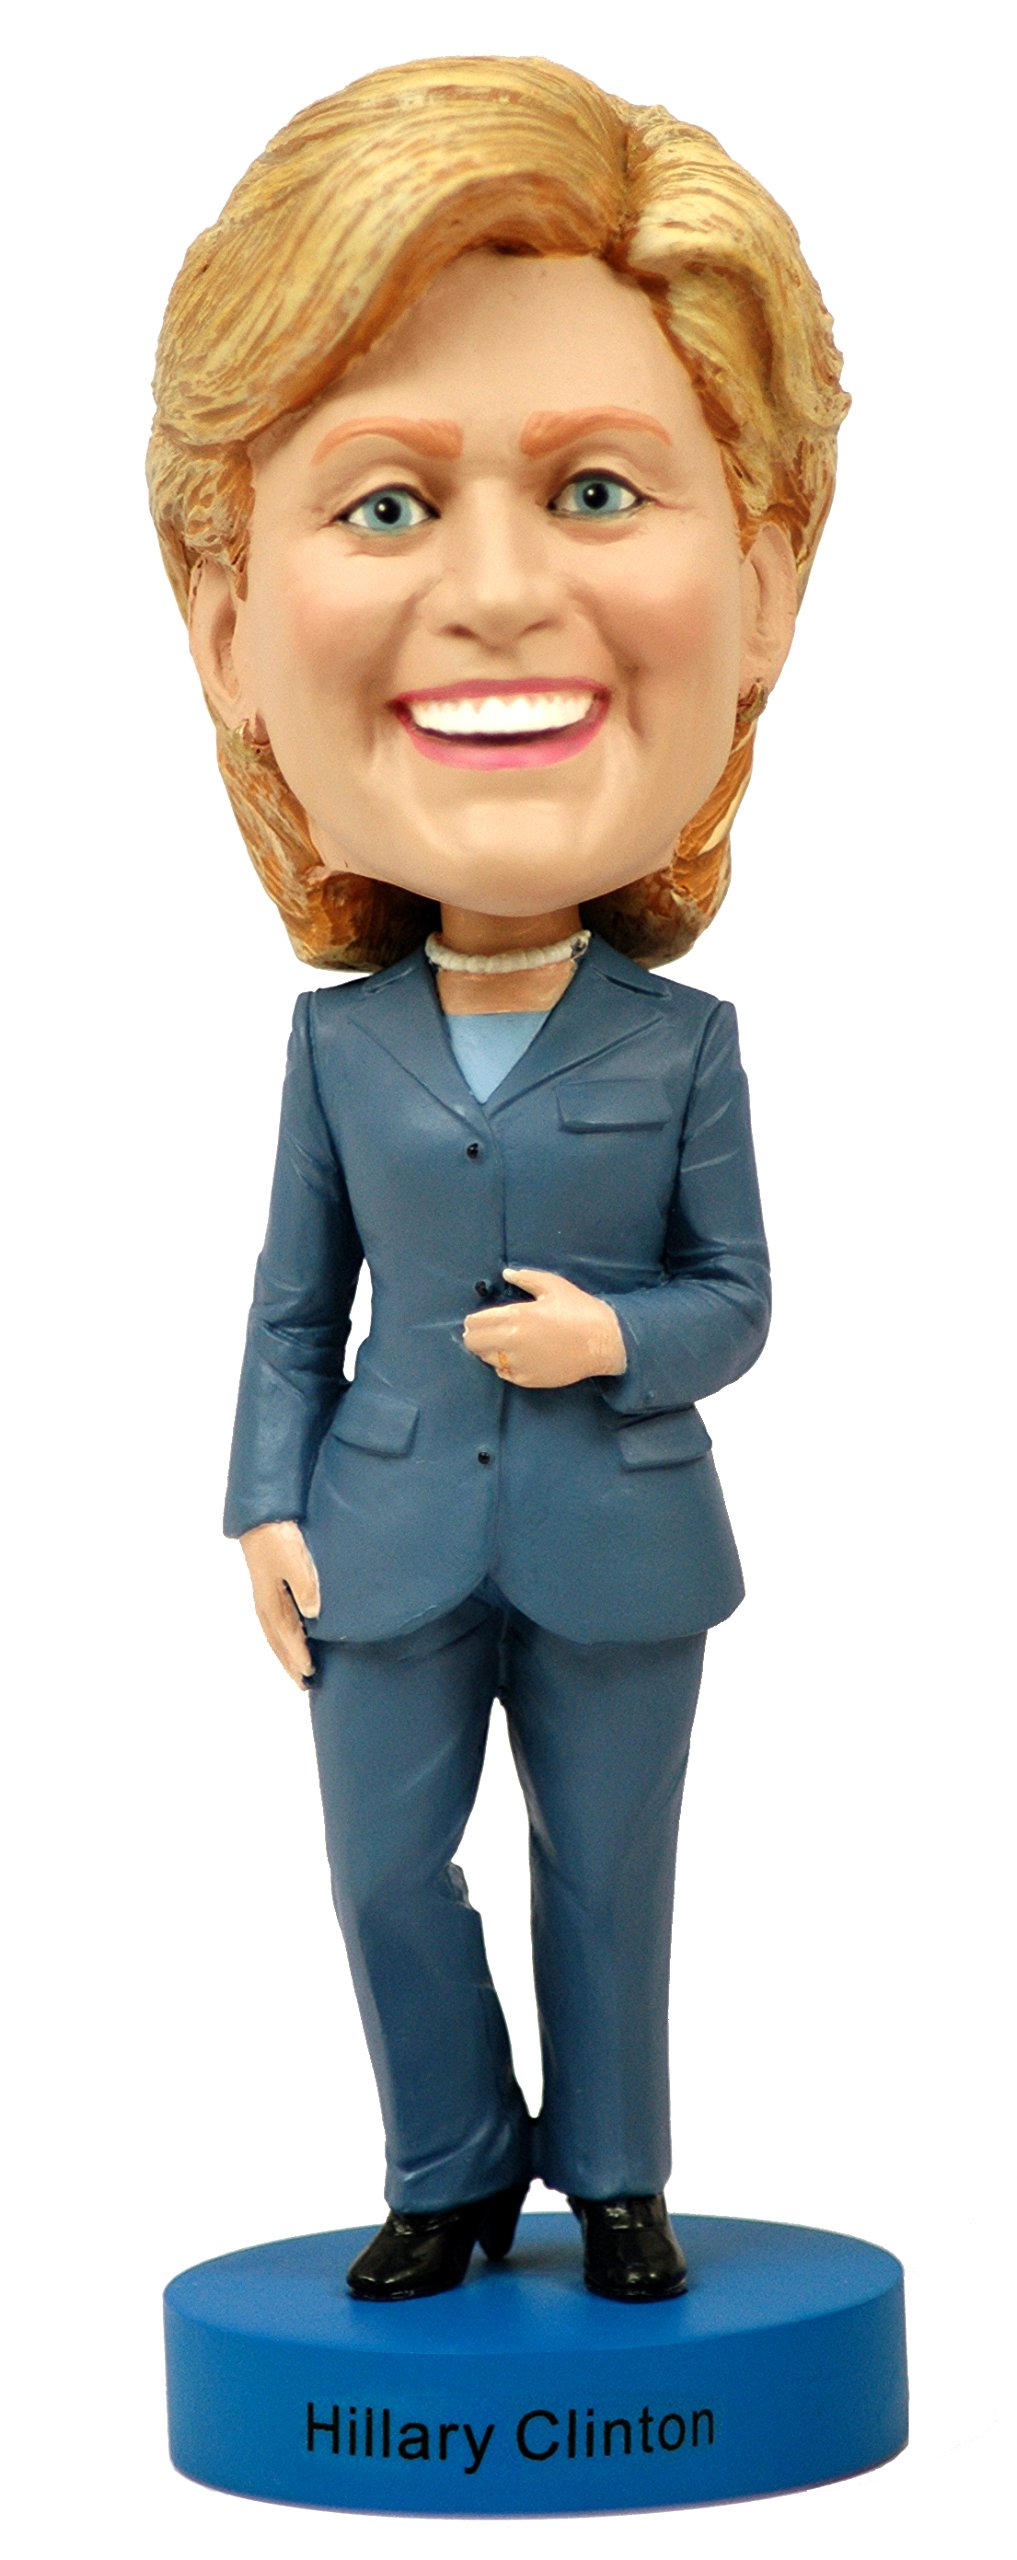 Royal Bobbles Hillary Clinton V1 Bobblehead